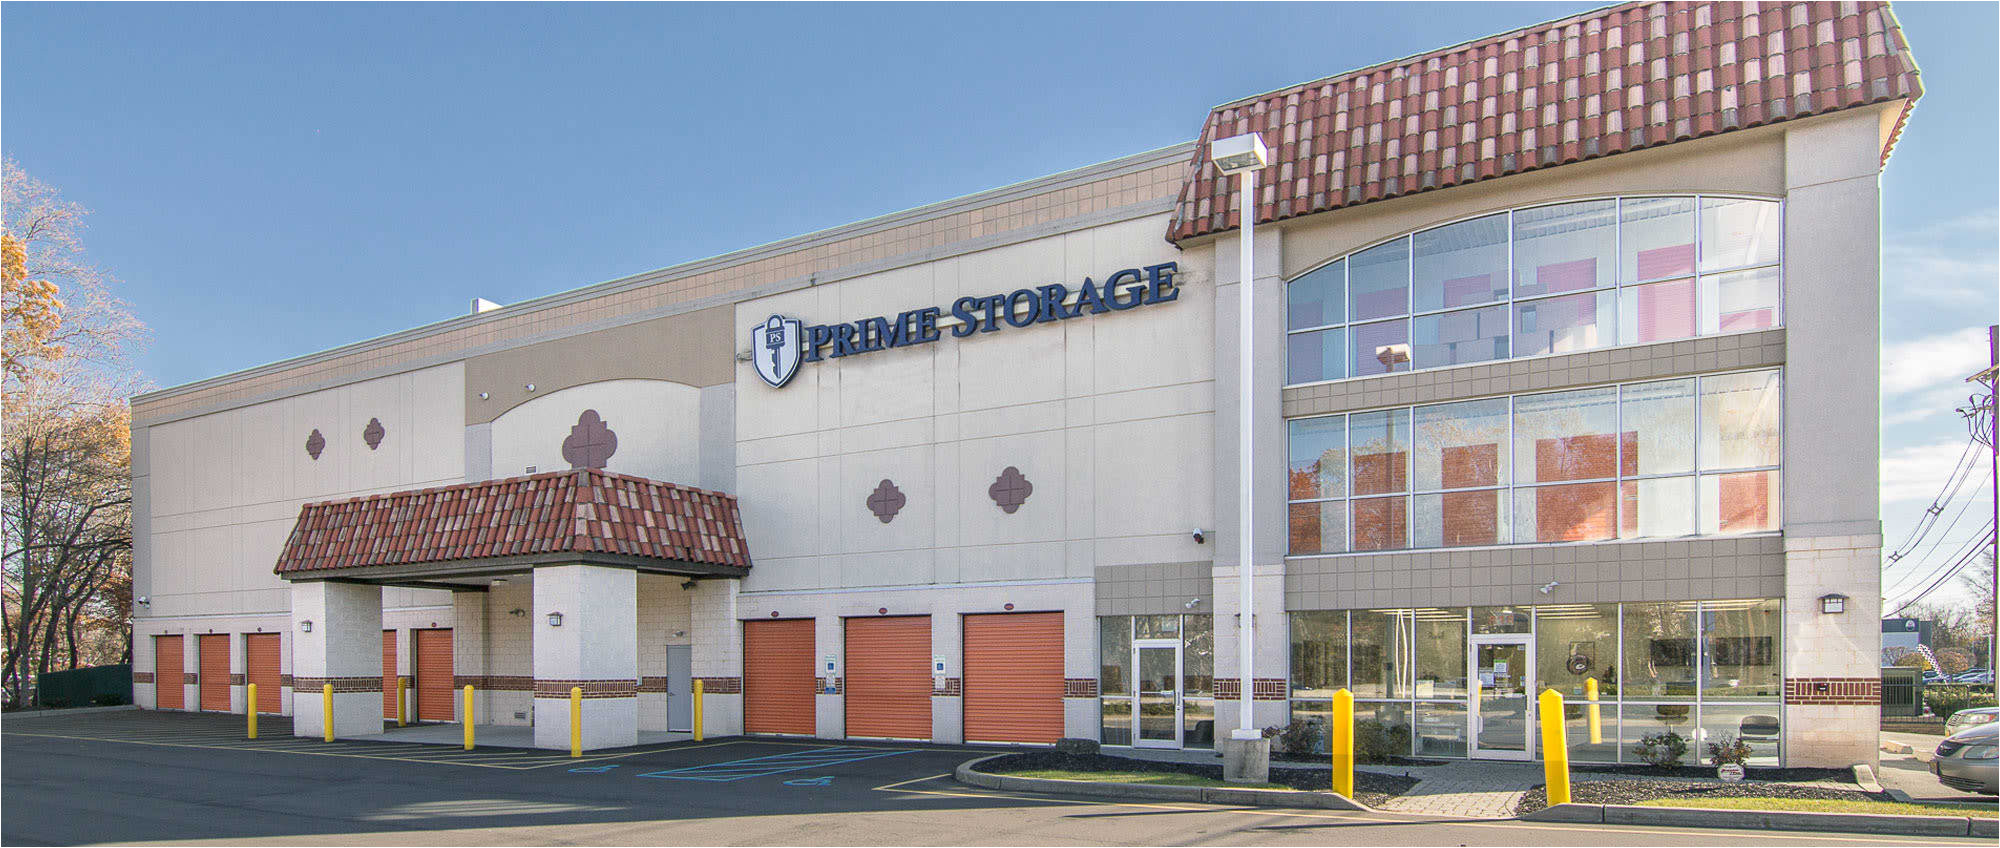 ny exterior of prime storage in saratoga springs